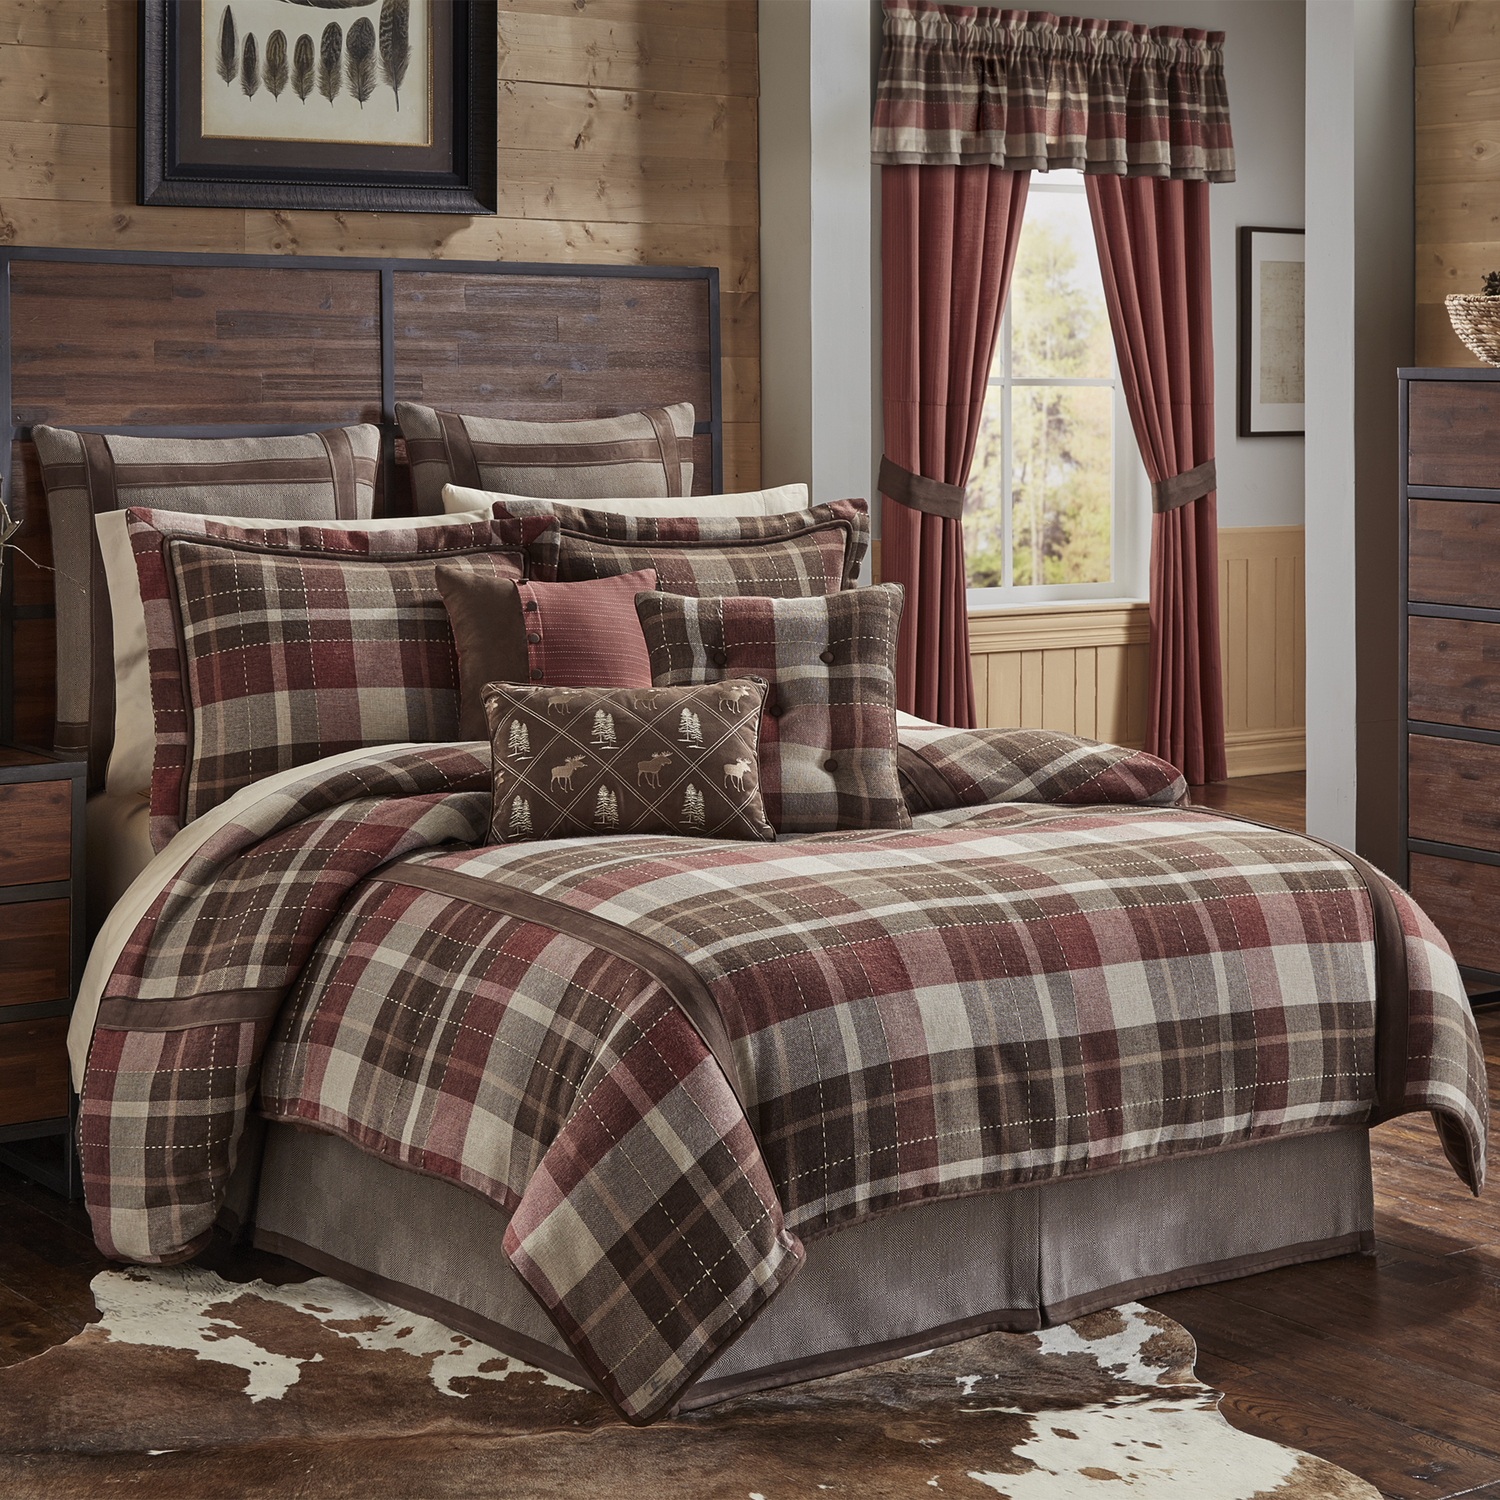 Kent By Croscill Home Fashions Beddingsuperstore Com